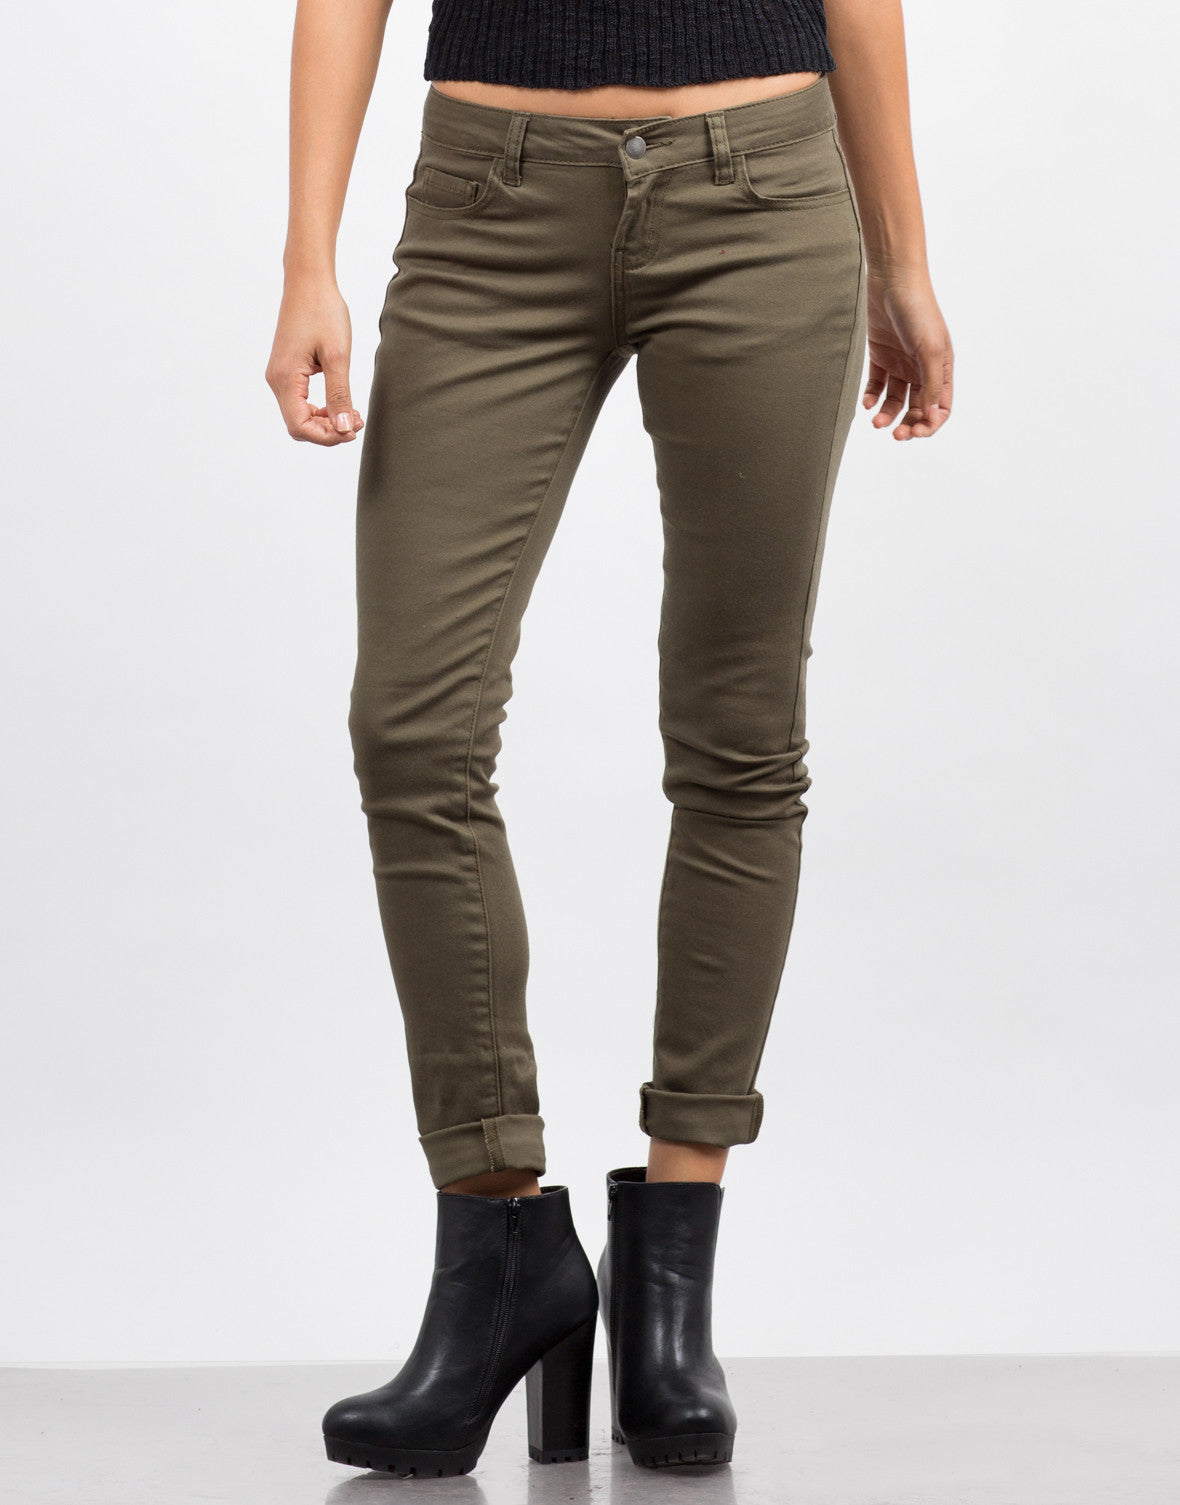 Front View of Basic 5 Pocket Skinny Jeans - Olive